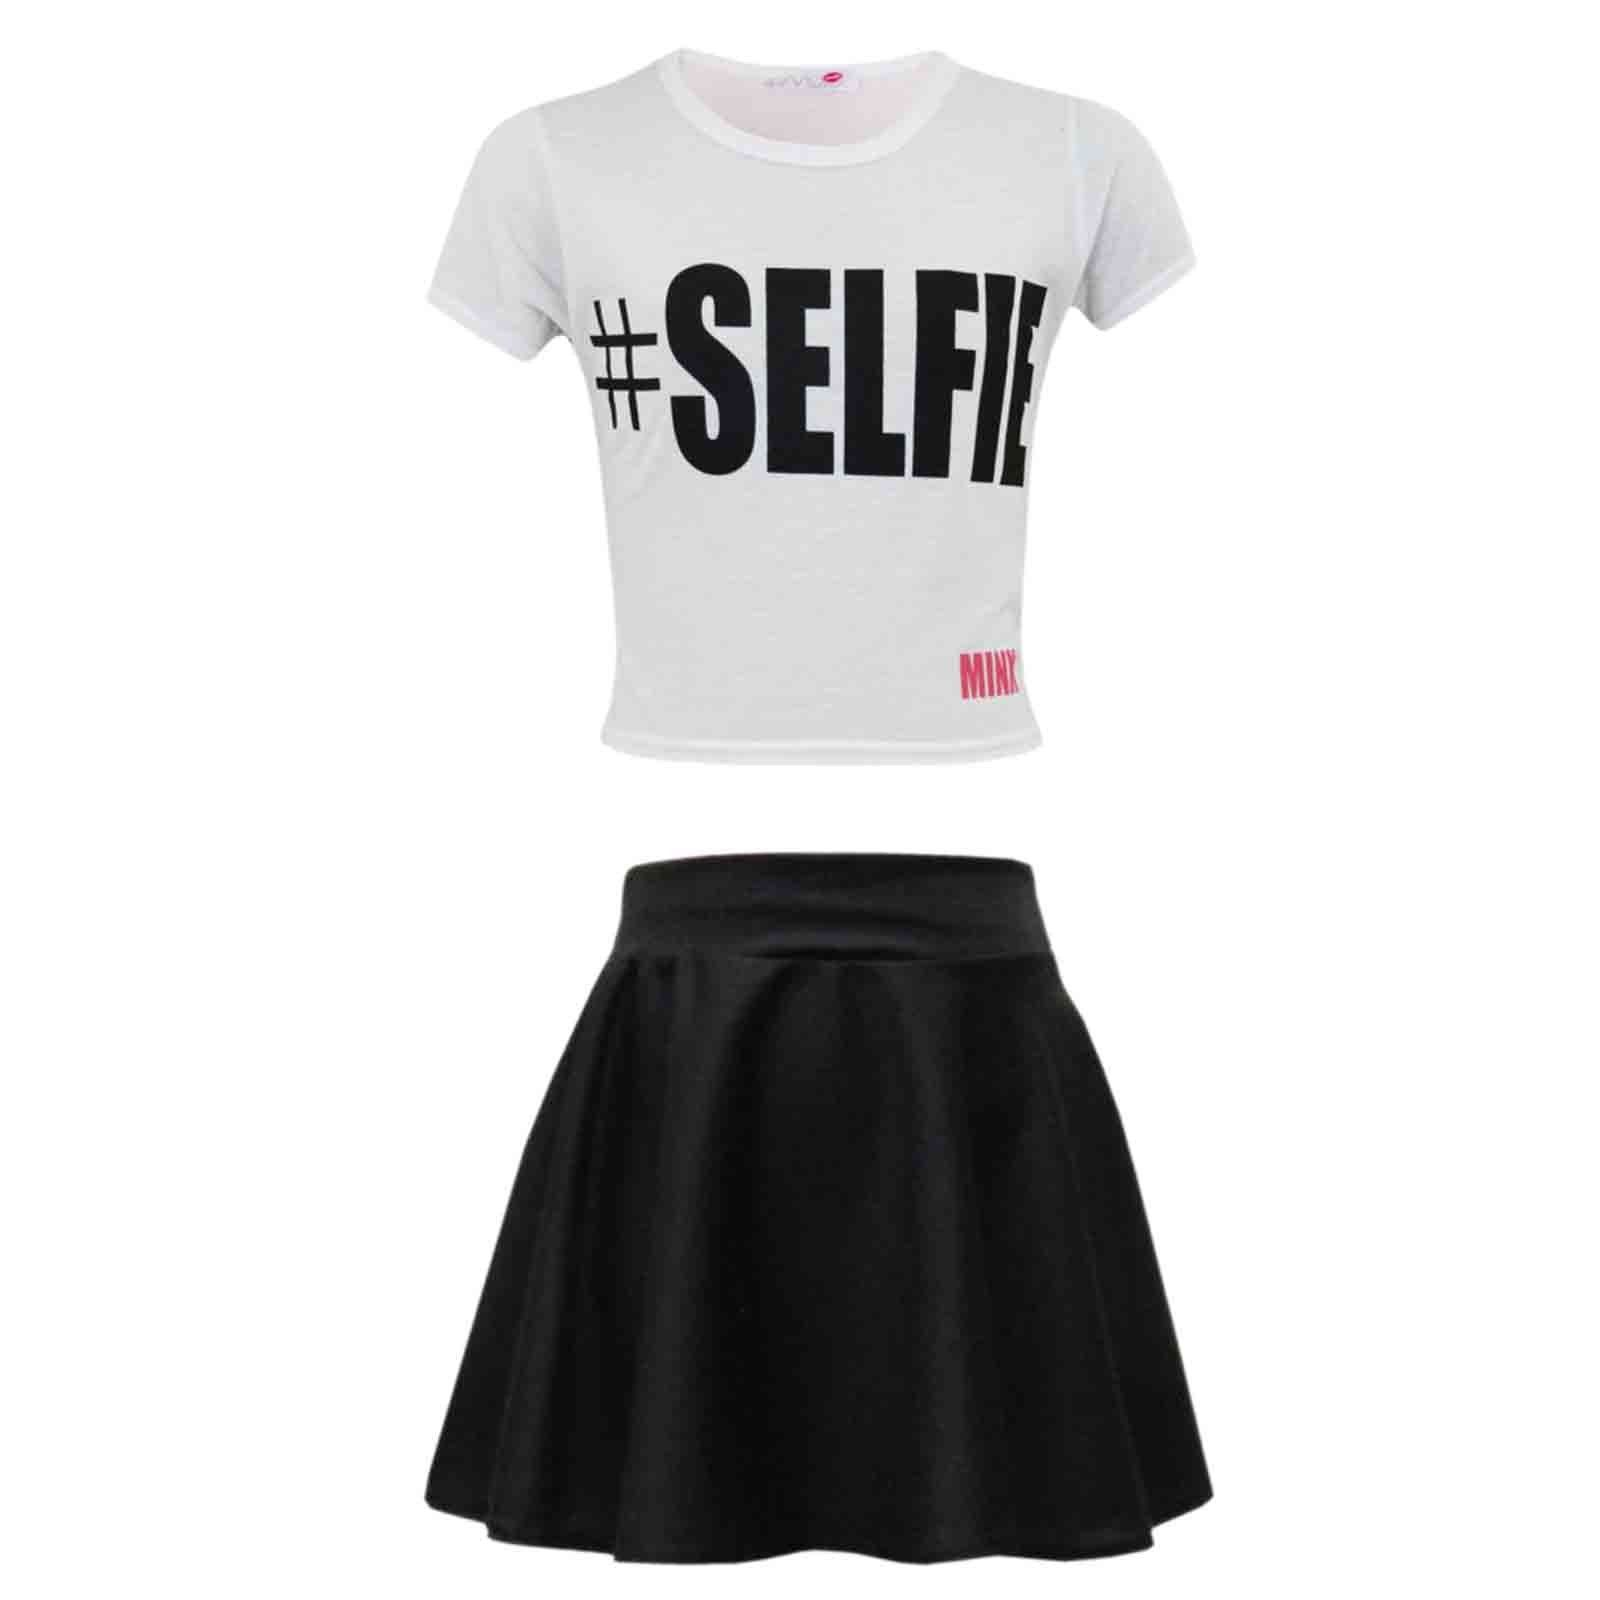 efb4a68029df Kids Girls  SELFIE Crop Top   Fashion Skater Skirt Set 7 8 9 10 11 ...